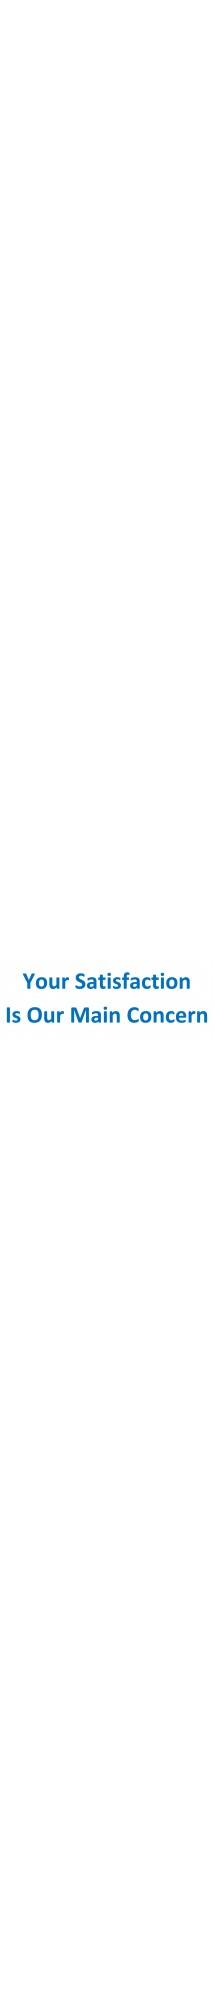 Your Satisfaction is Our Main Concern